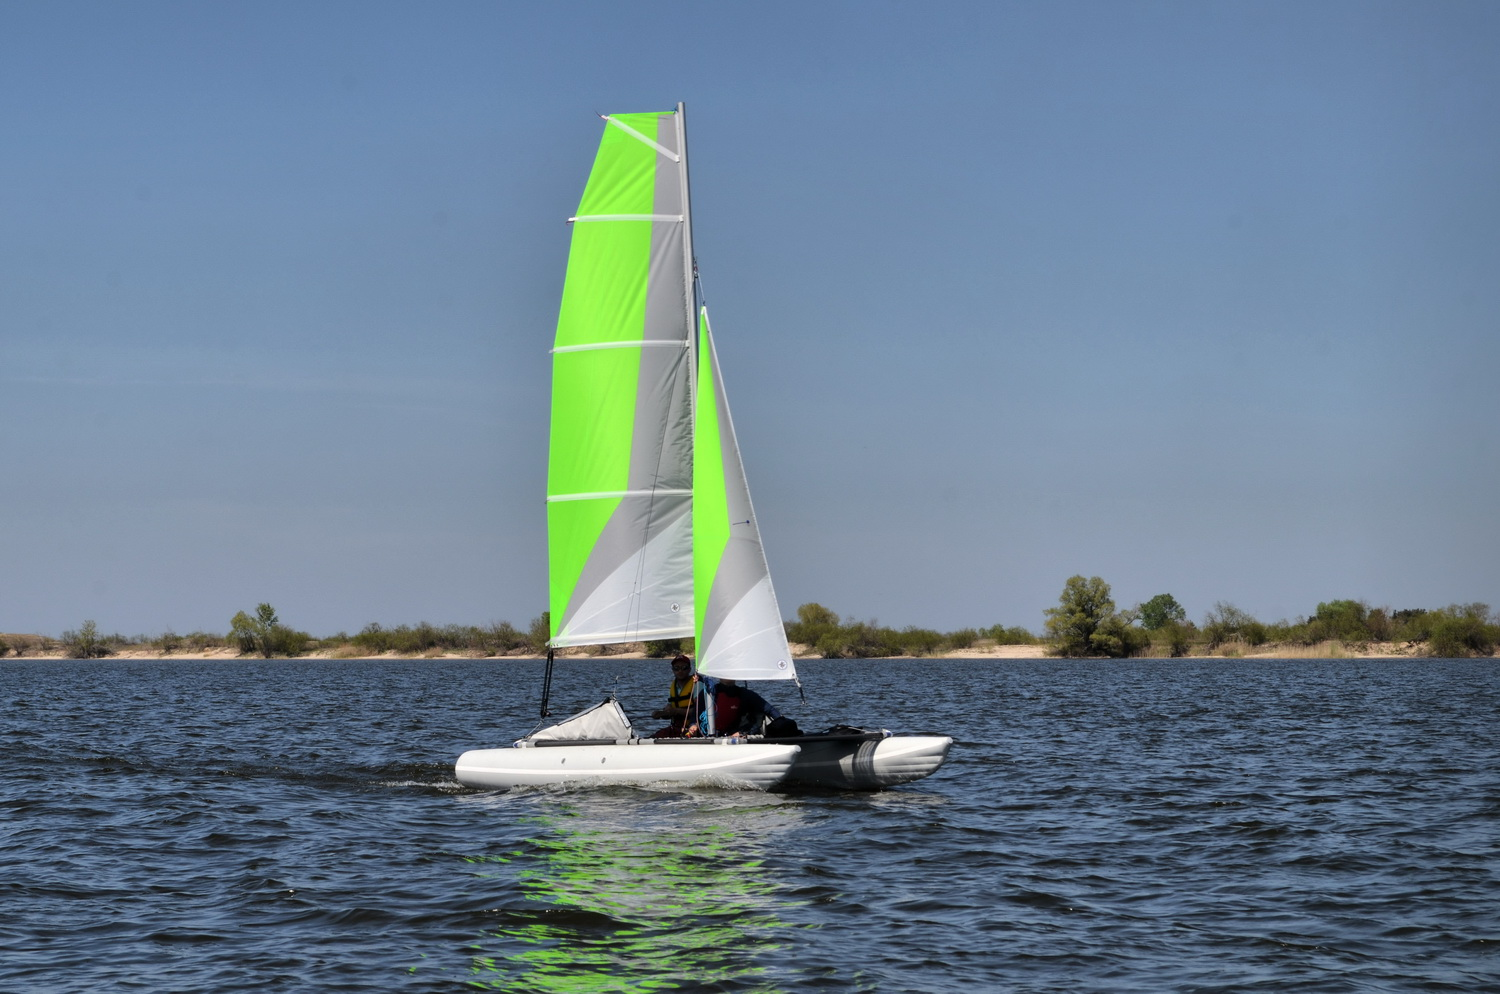 Inflatable sailing catamaran Ducky16